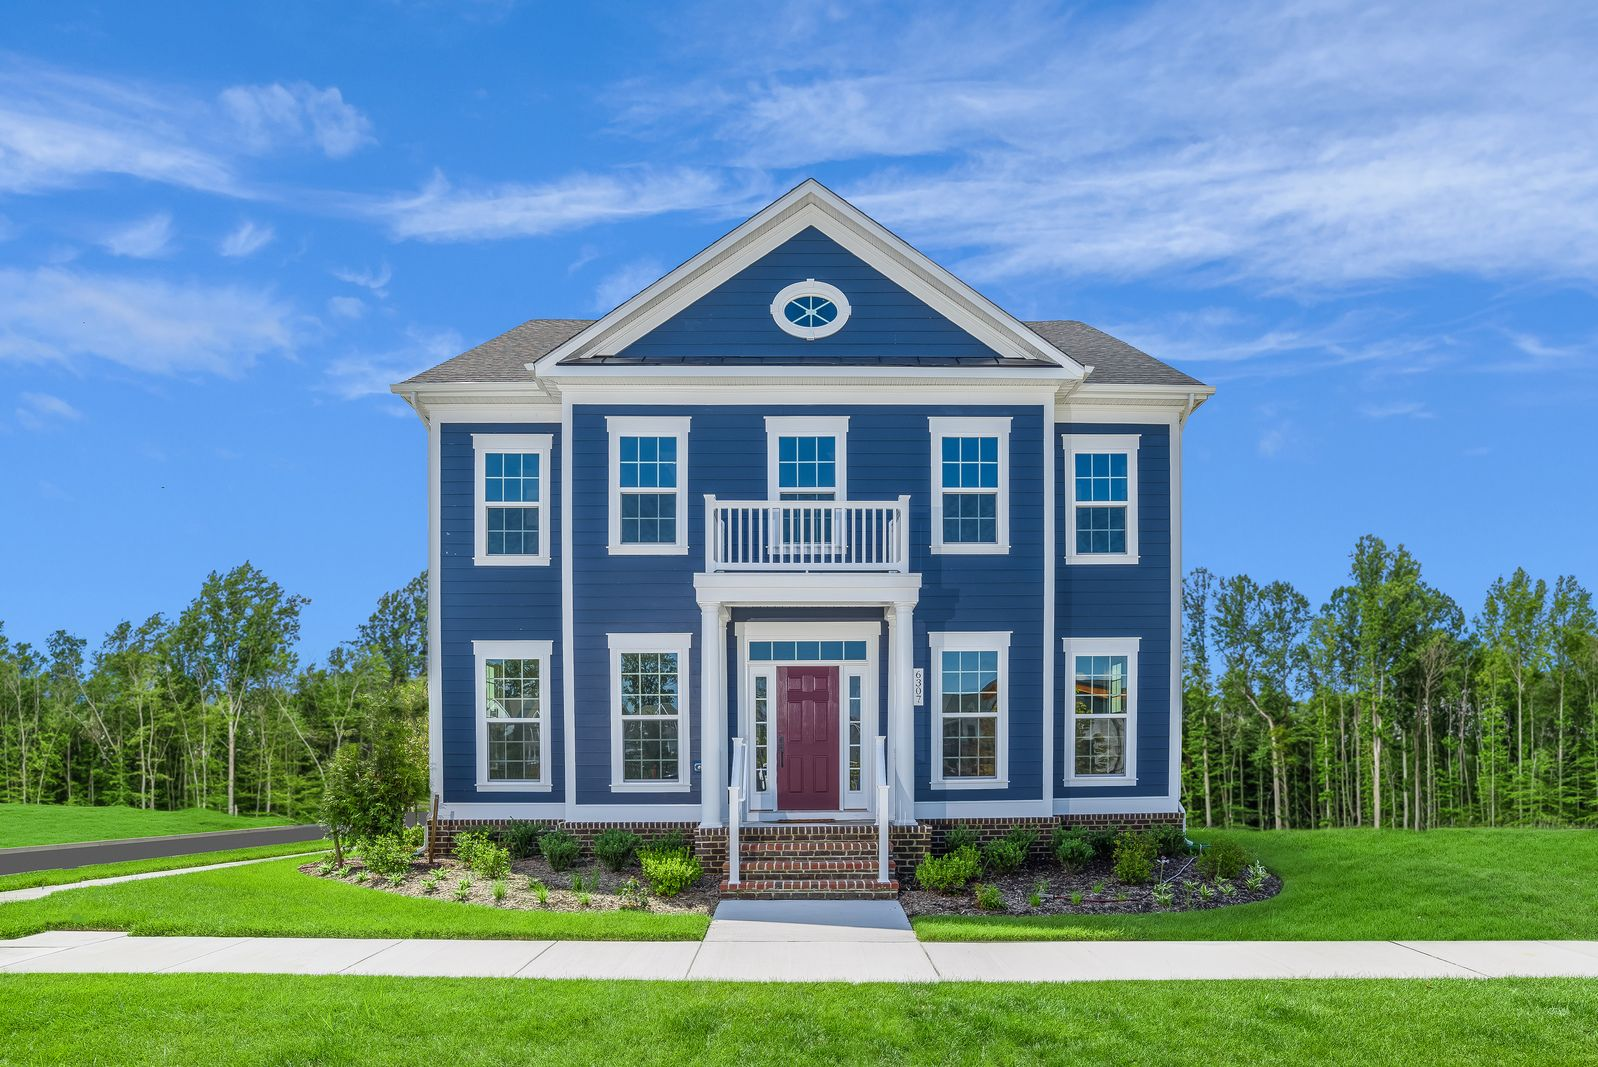 Welcome to Greenleigh:Luxury single family homes in a resort-style community, featuring amenities, on-site restaurants and more, from the upper $400s. Schedule your visit today!